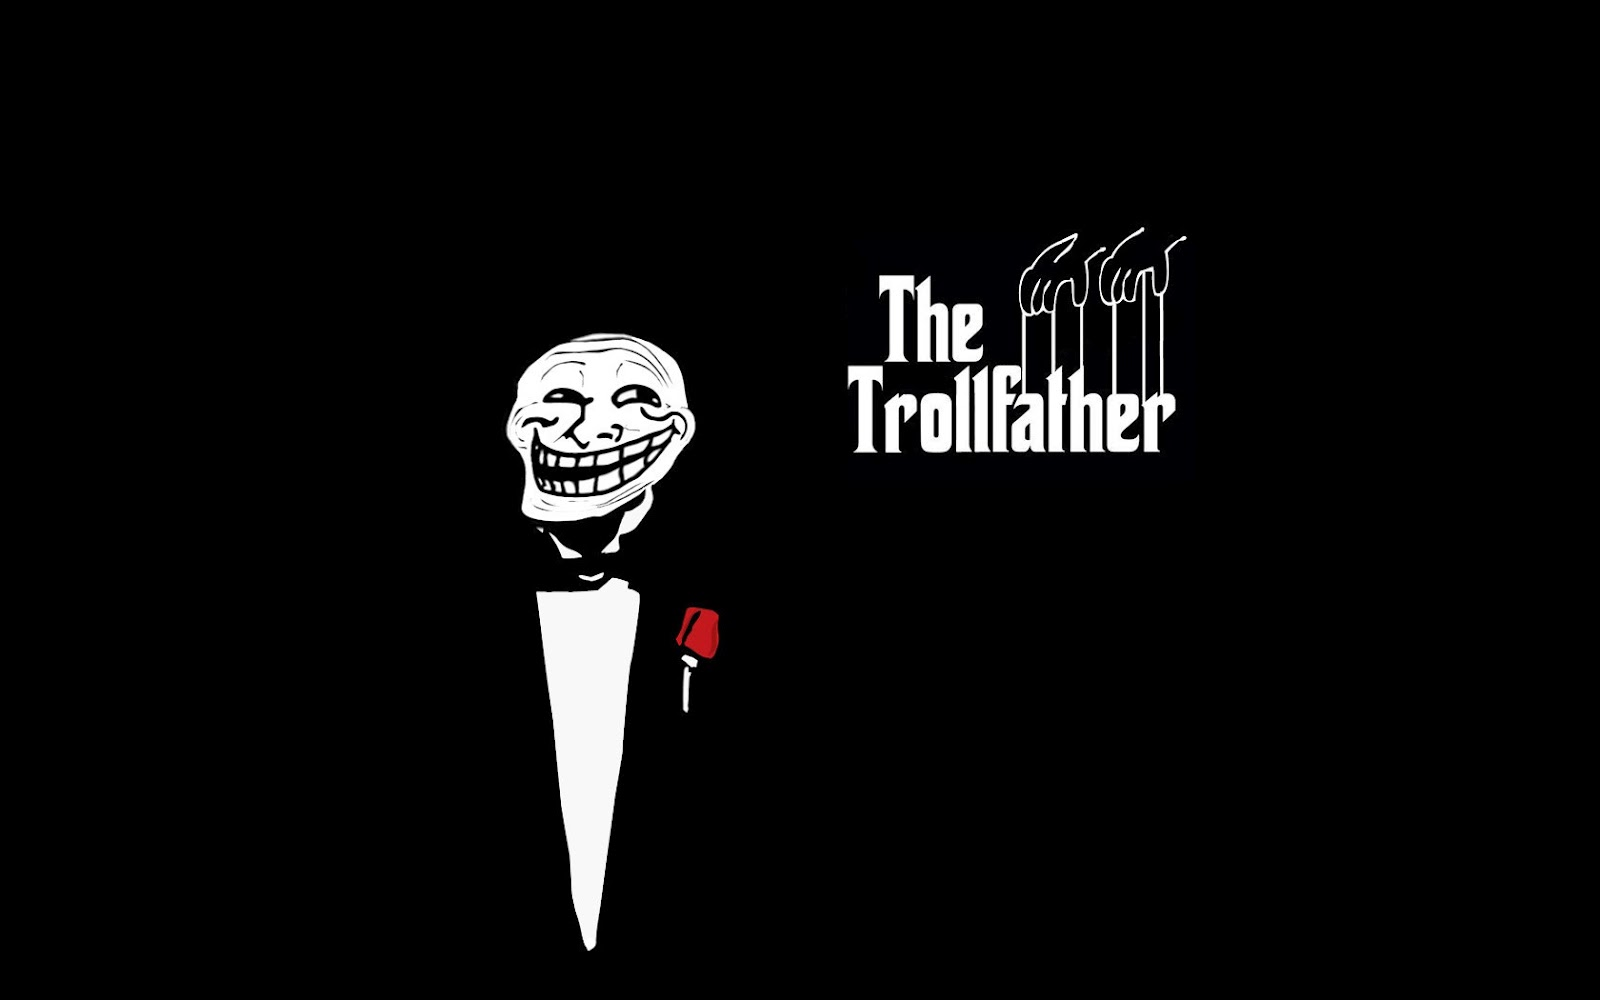 Funny Trollface Meme HD Wallpapers HD Wallpapers Backgrounds Photos 1600x1000